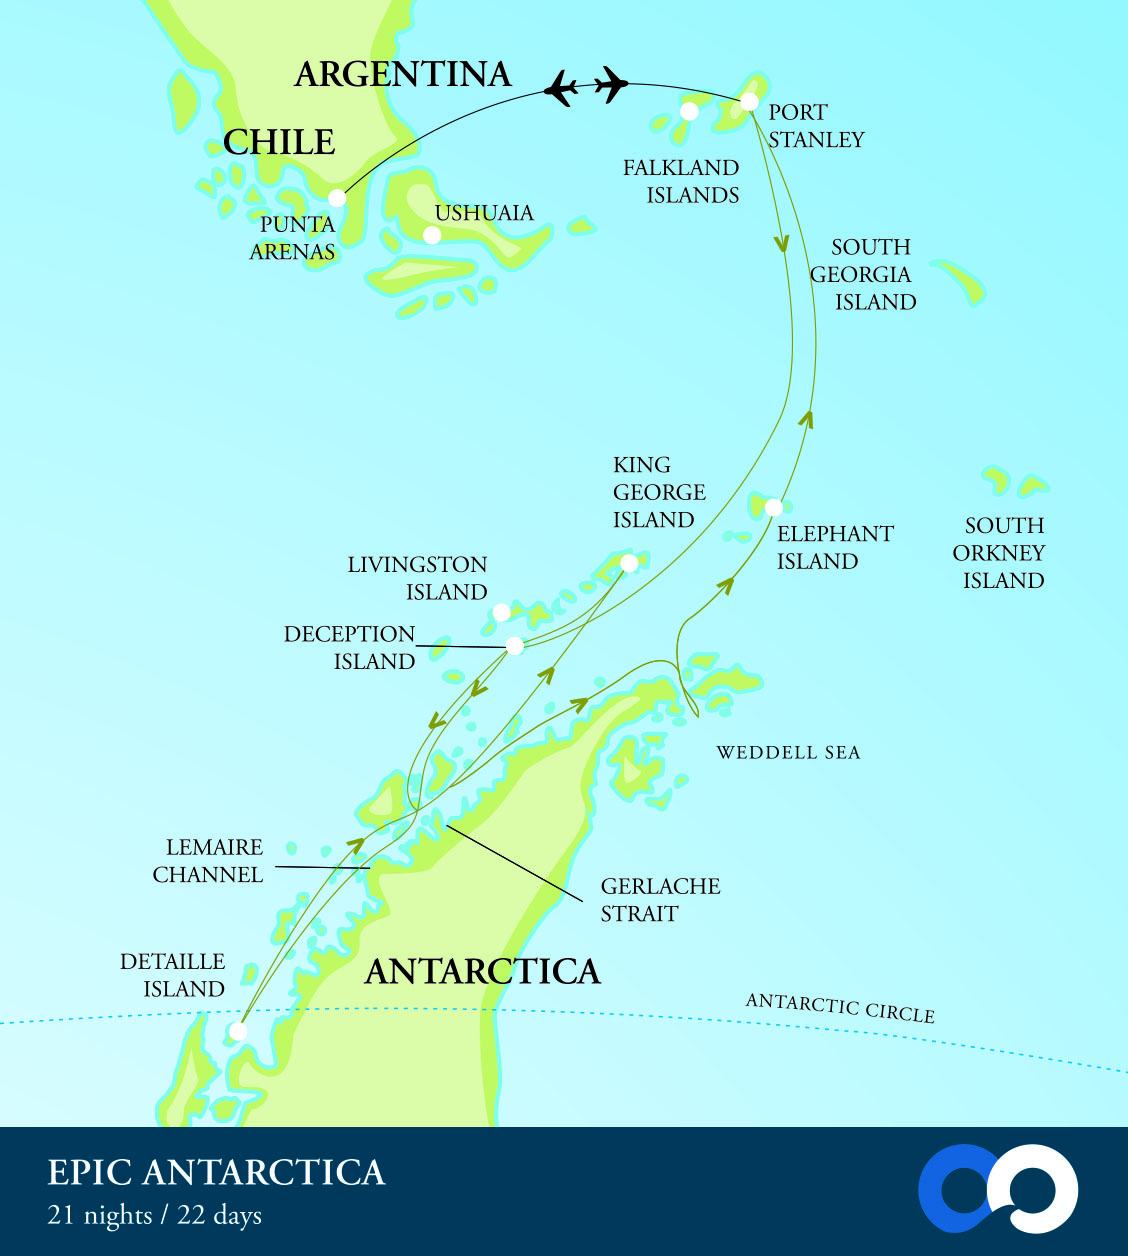 Antarctic vacation for more than 20 days in Antarctica. Travel on an expedition cruise ship to Antarctica and explore the Antarctic wildlife in depth.